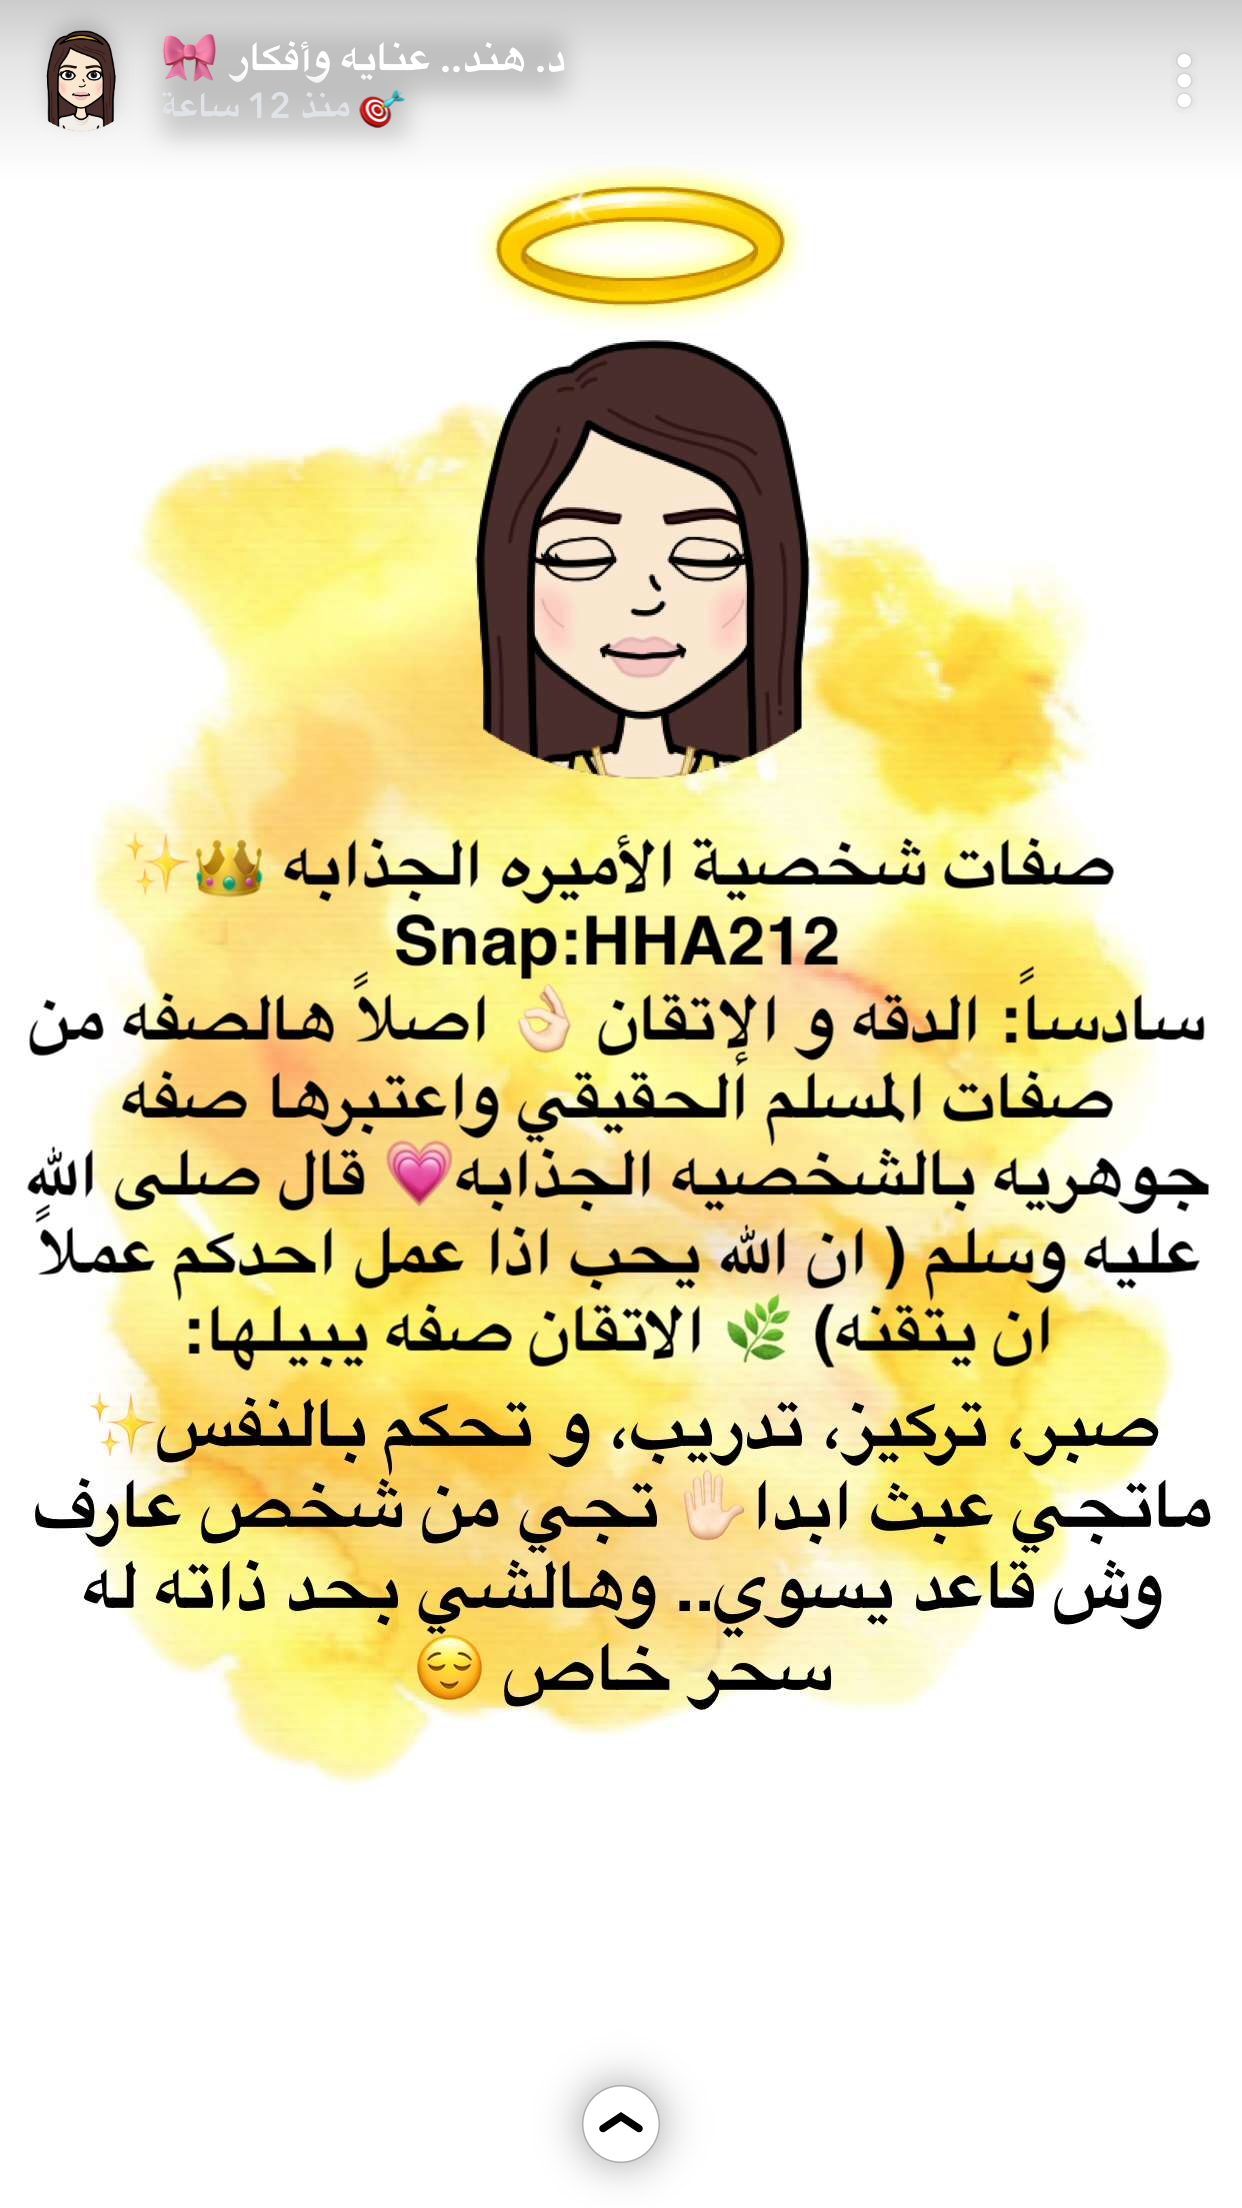 Pin By Hanan Suliman On Valuable Tips 2 Life Habits Life Rules Marriage Life